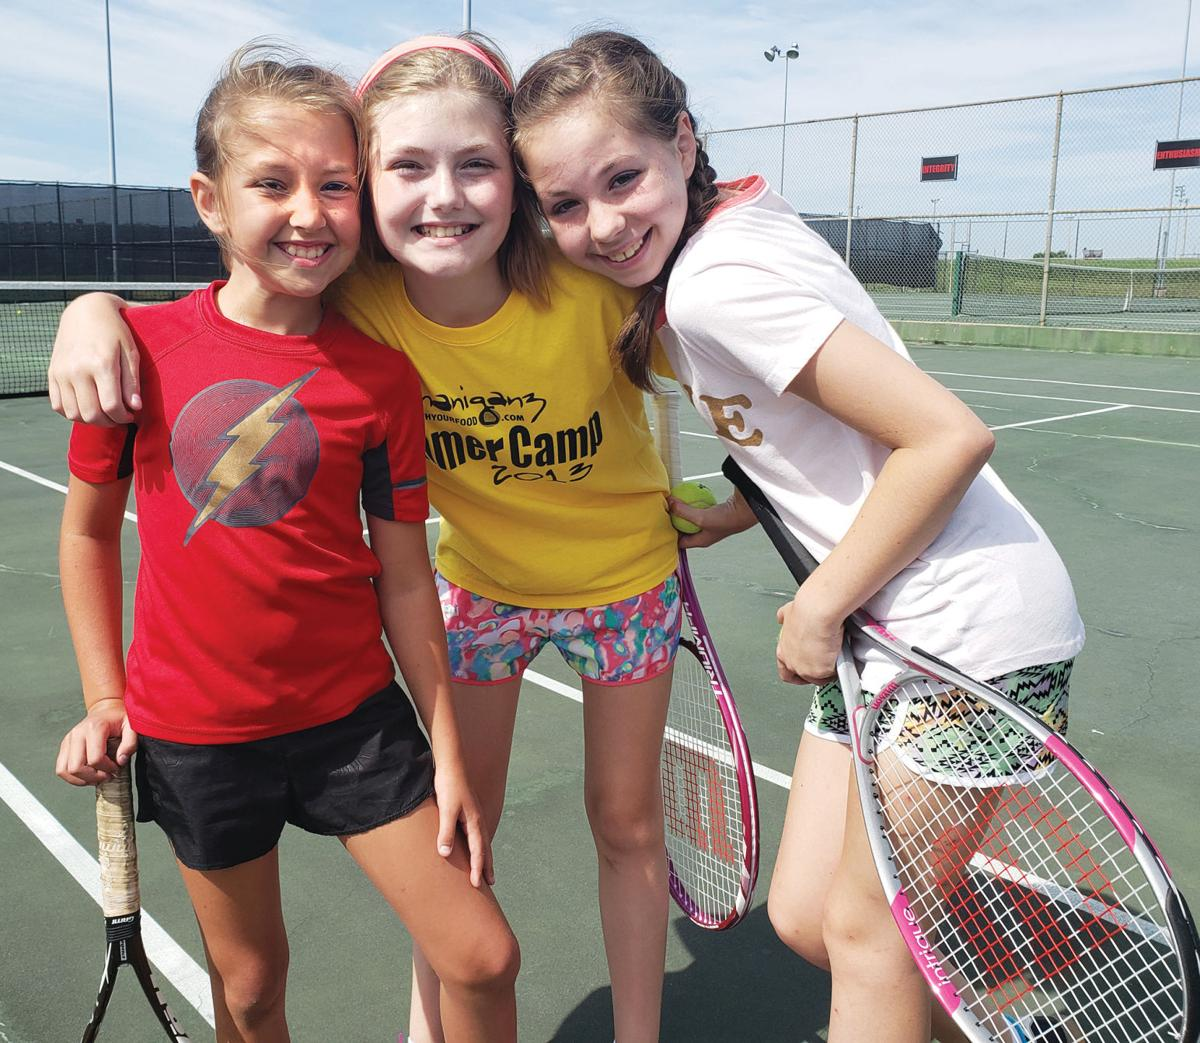 Tennis camp fun